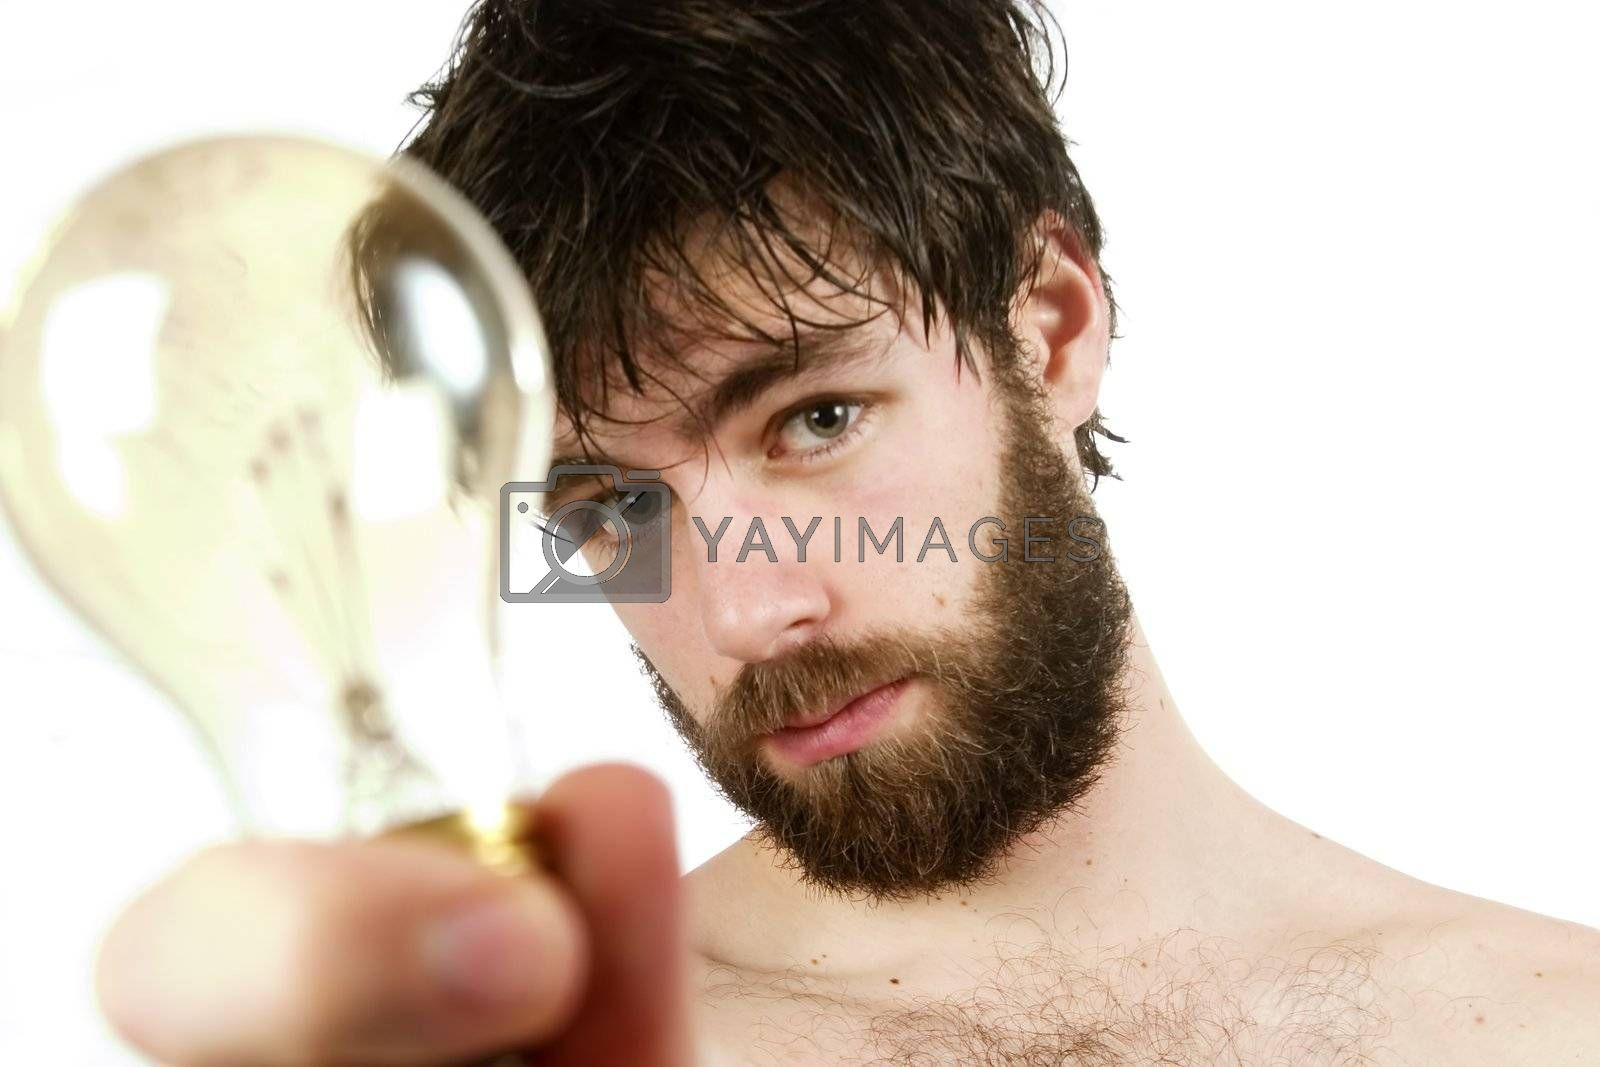 A humor shot, of a young newly showered male, holding a light bulb, thinking up fresh new ideas.